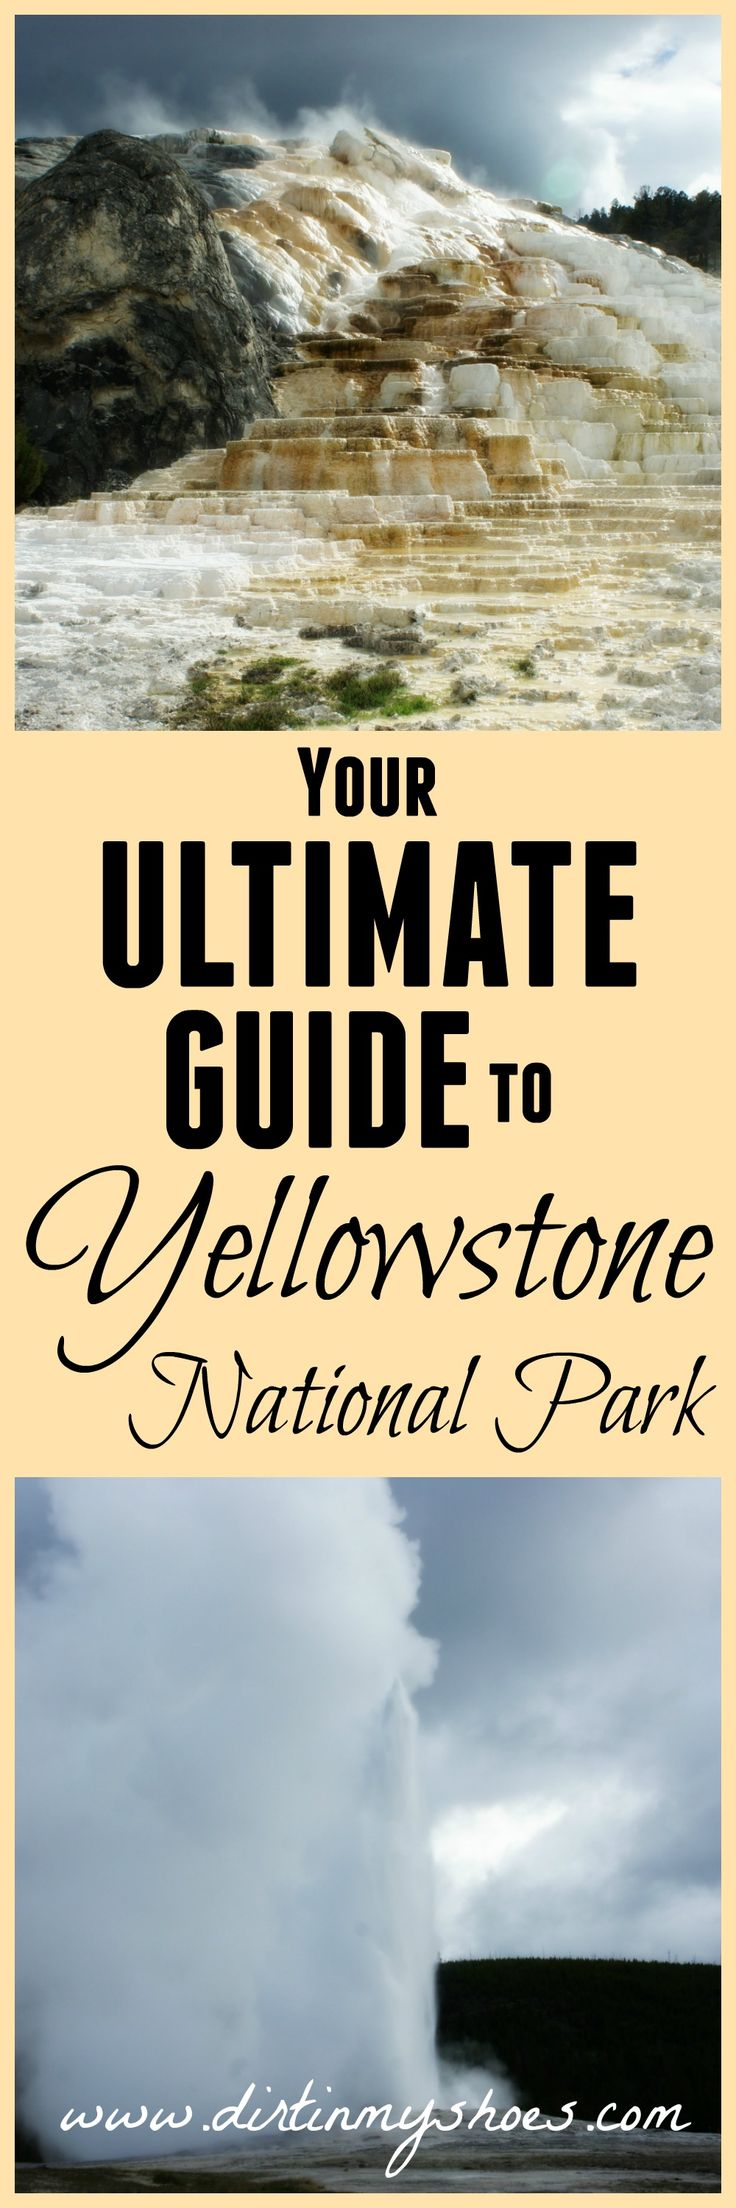 Everything you need to know about planning a trip to Yellowstone National Park!  Learn about the 12 things you can't miss, roadside waterfalls dining, lodging, hiking, and camping!  This website HELPED me so much with my trip planning.